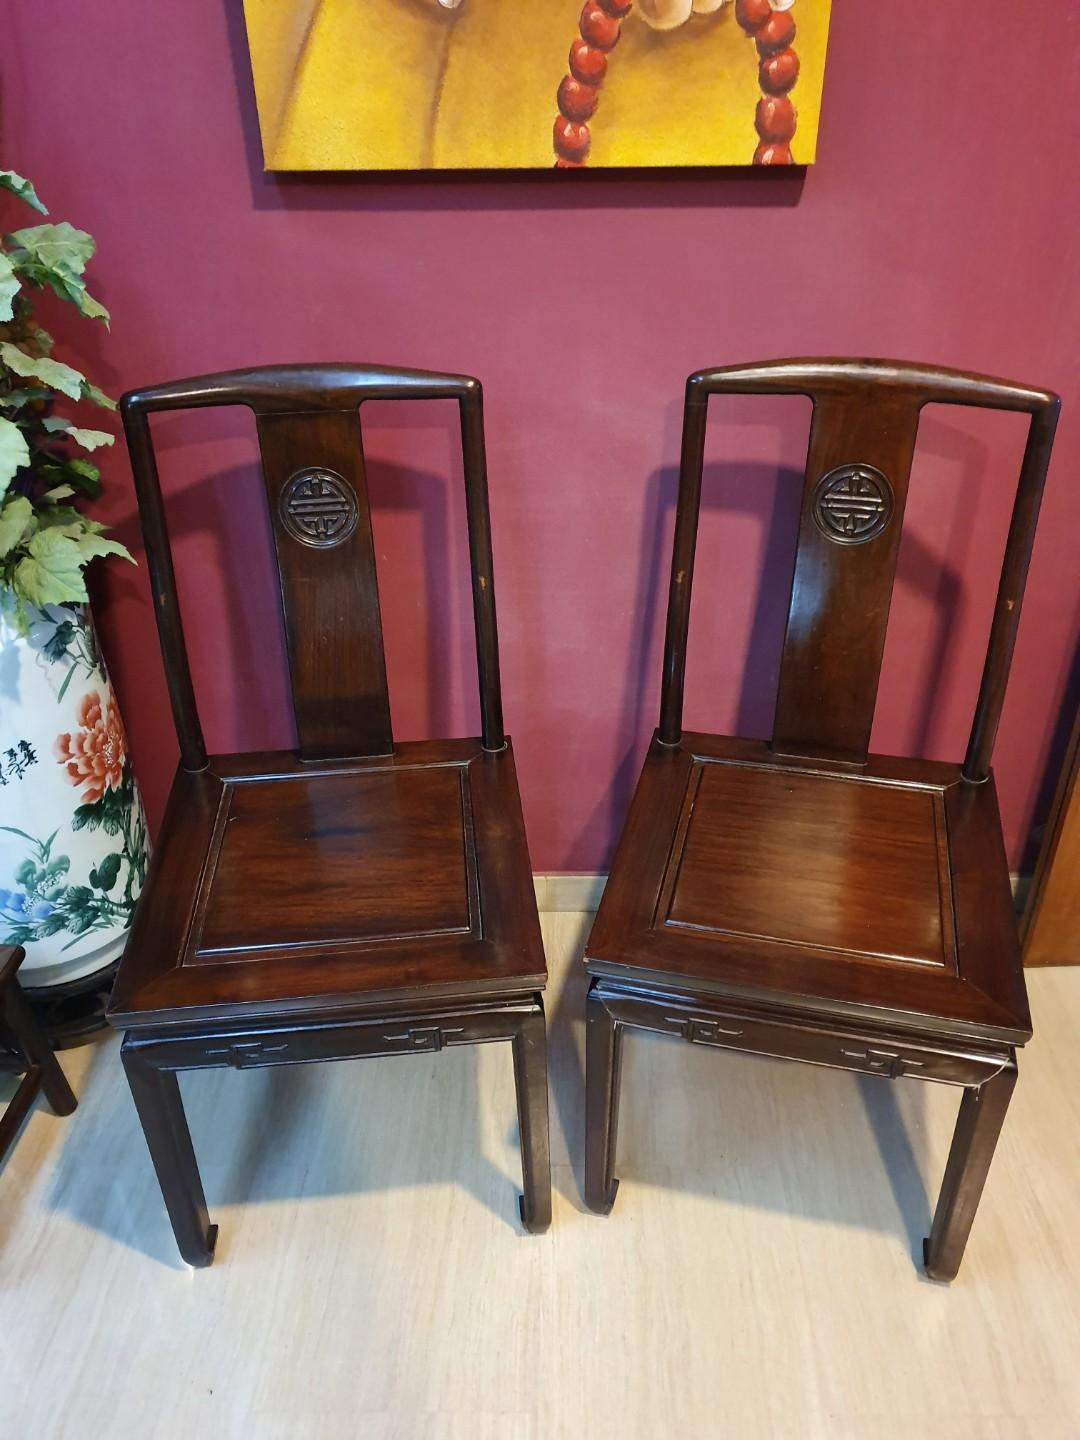 Antique Chinese Furniture for Sale Awesome Antique Chinese Chairs Ebony Wood Left E Furniture